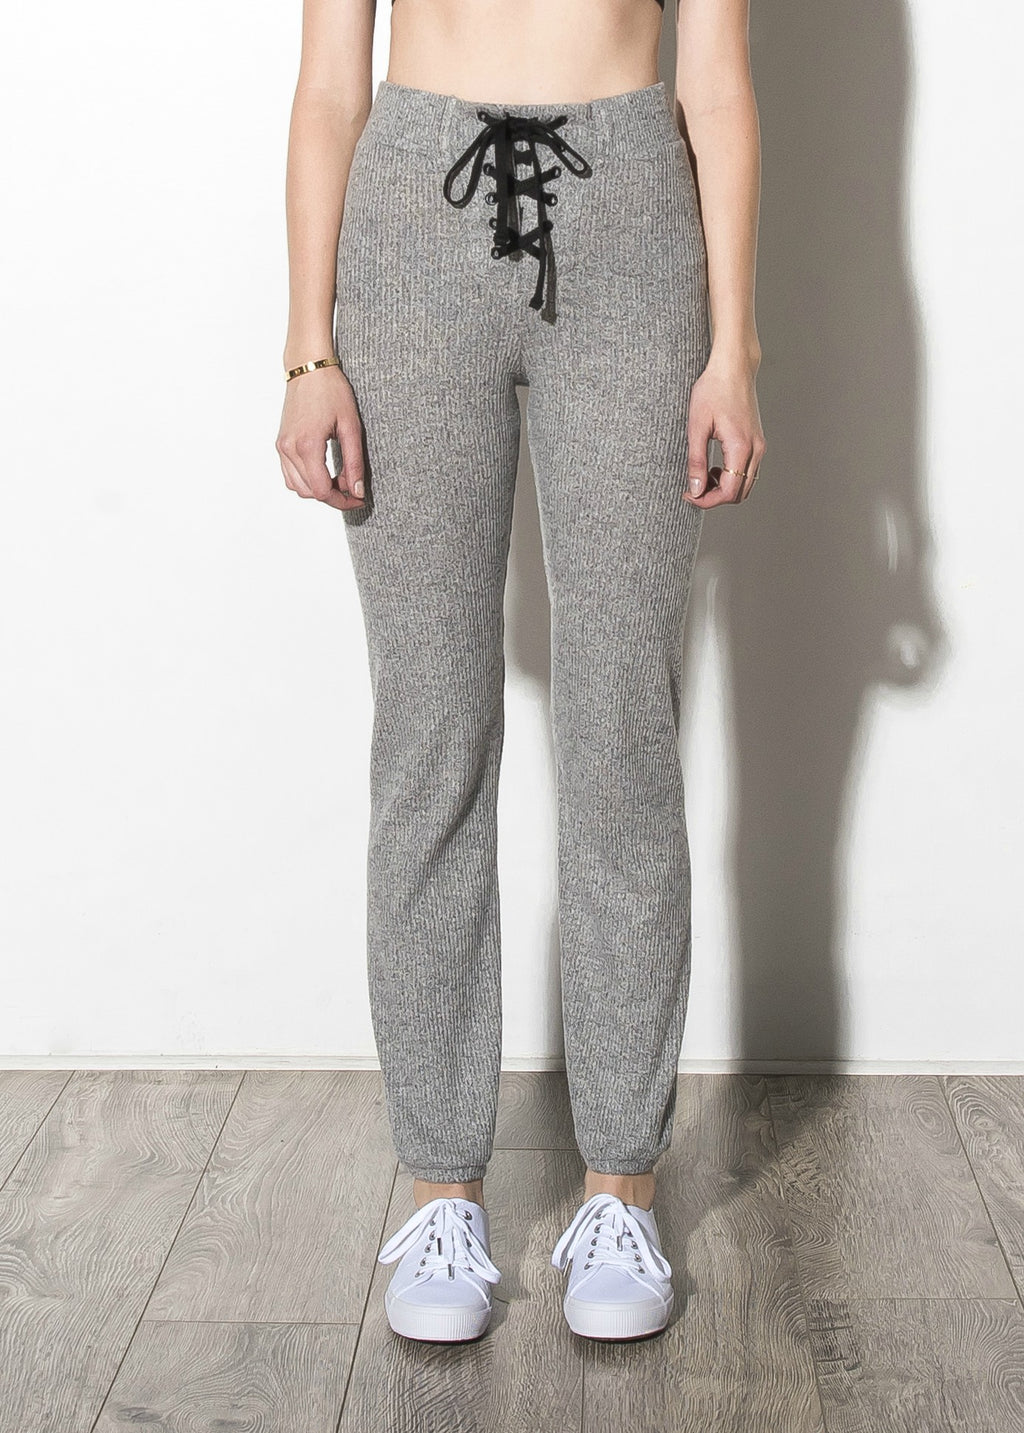 High Waist Lace Up Sweatpants